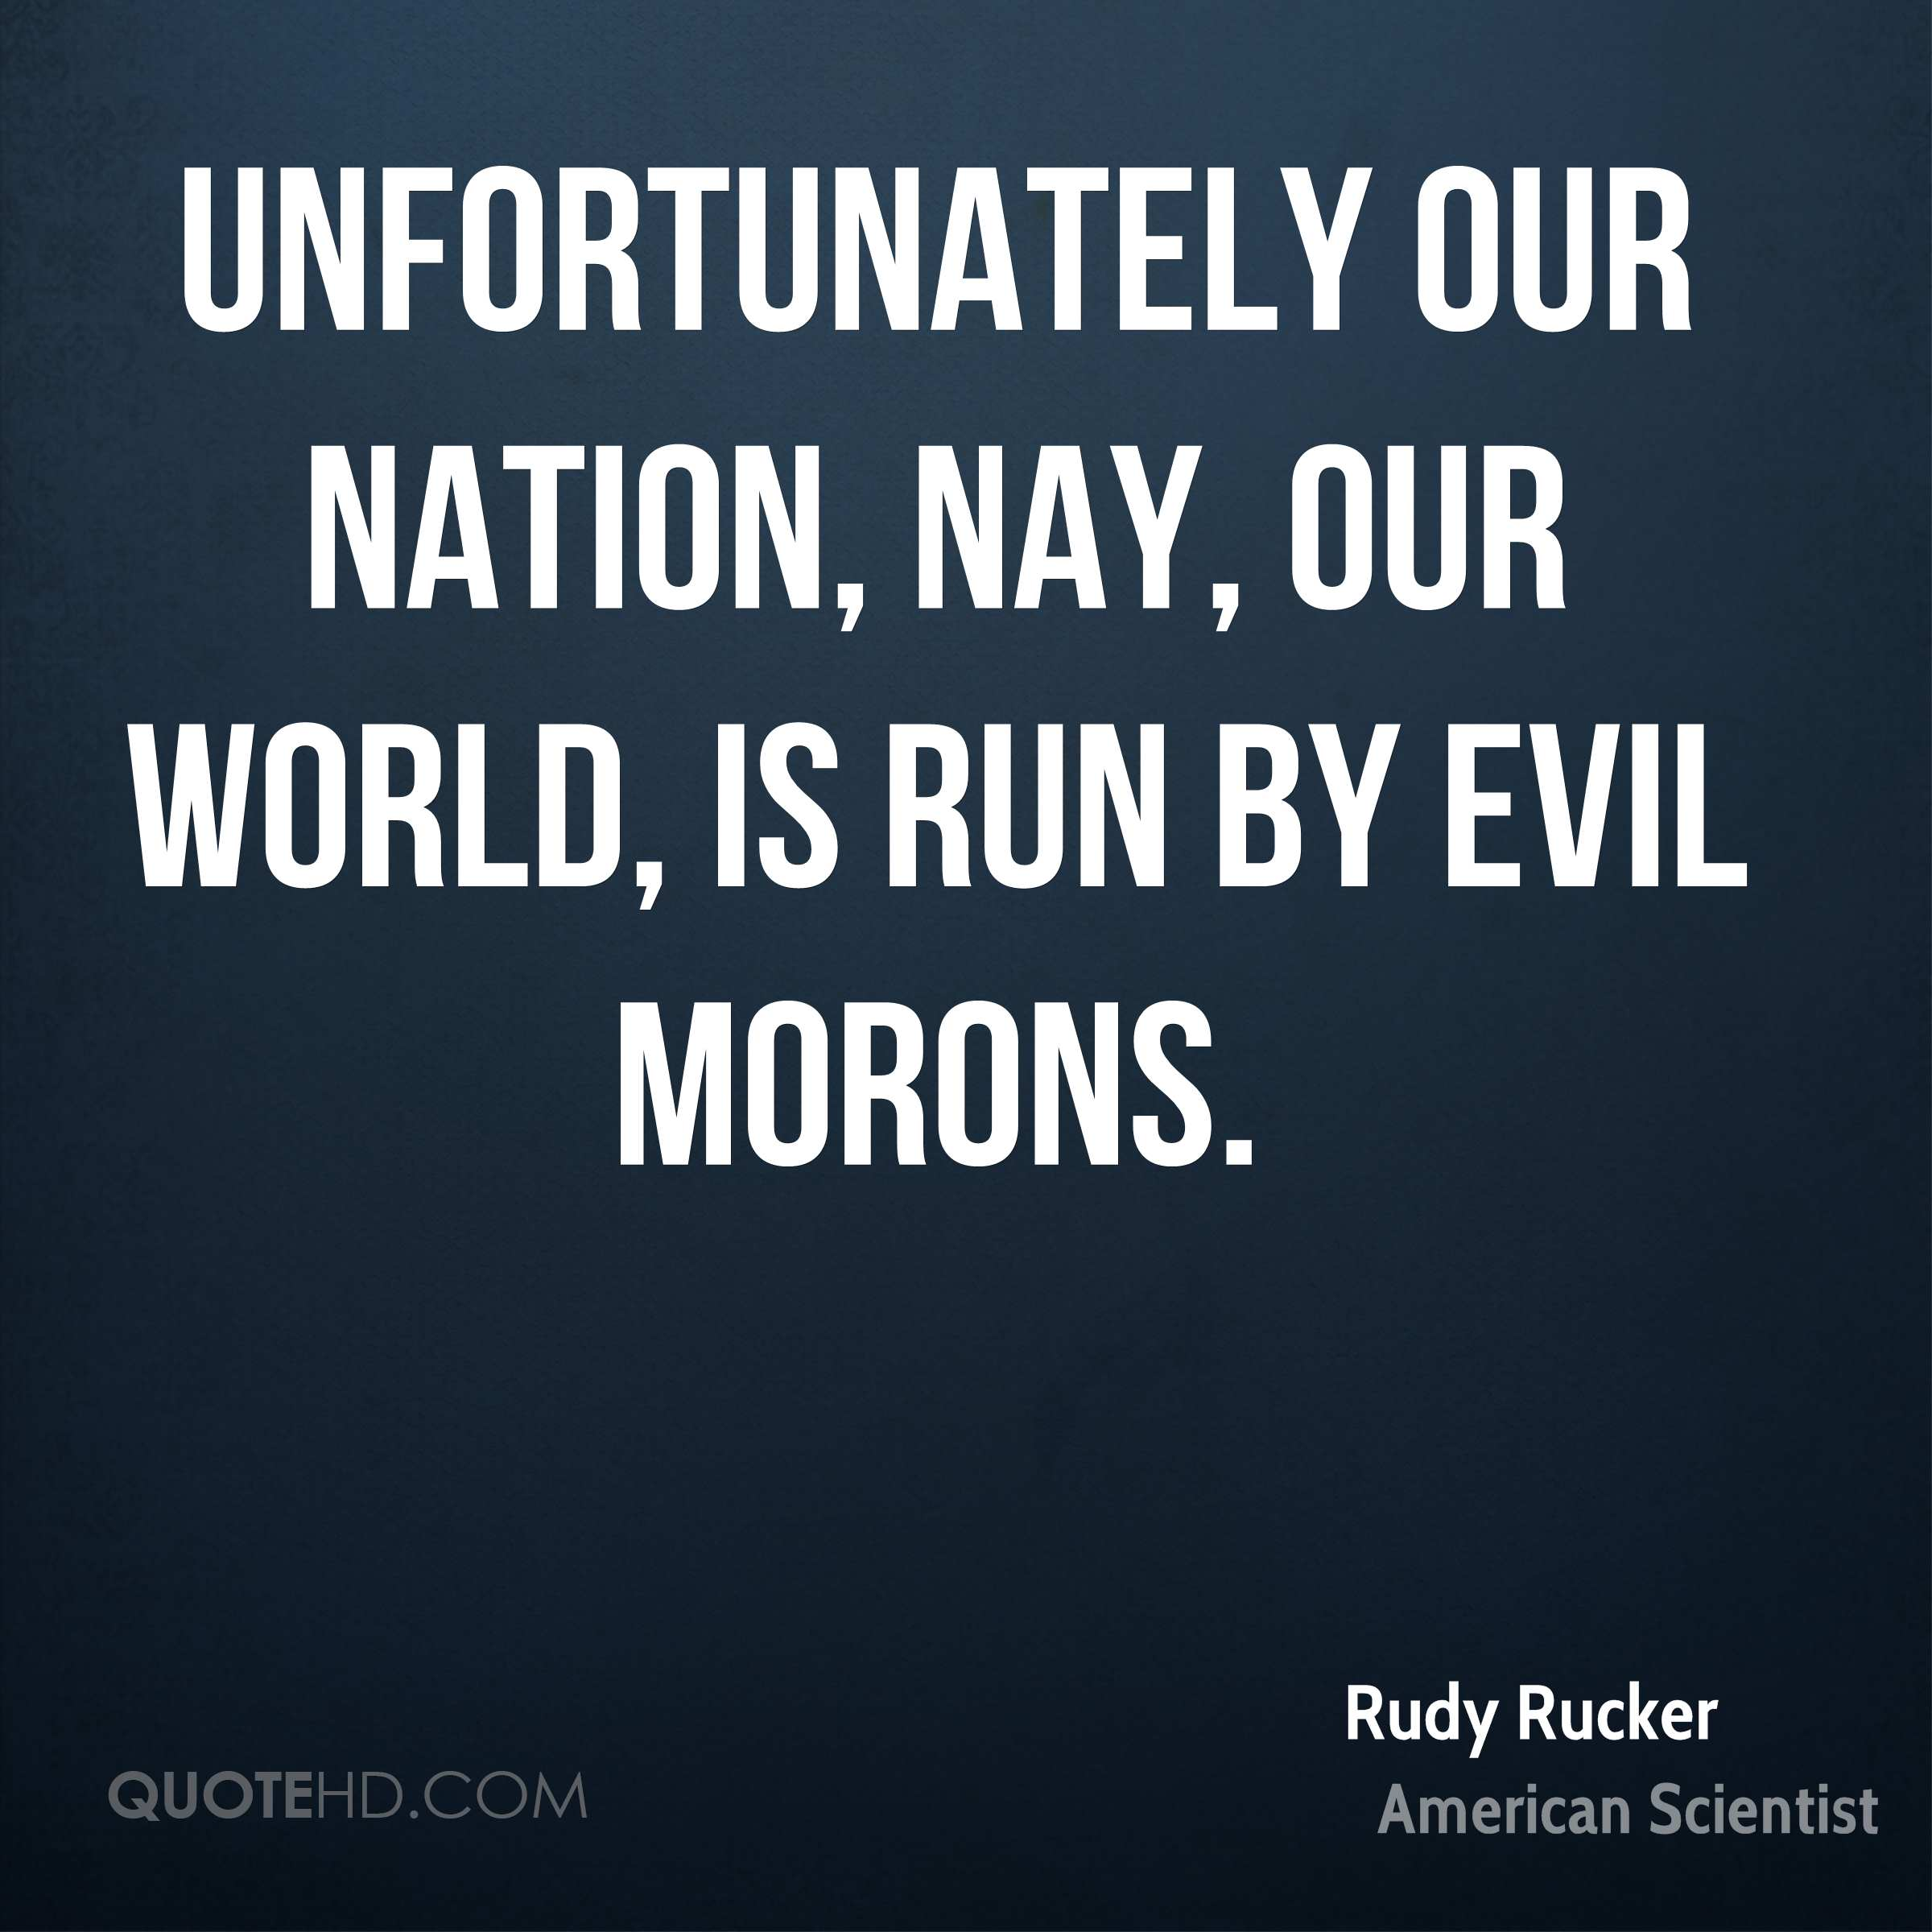 Evils In Our World Today Rudy Rucker Rudy Rucker Unfortunately Our Nation Nay